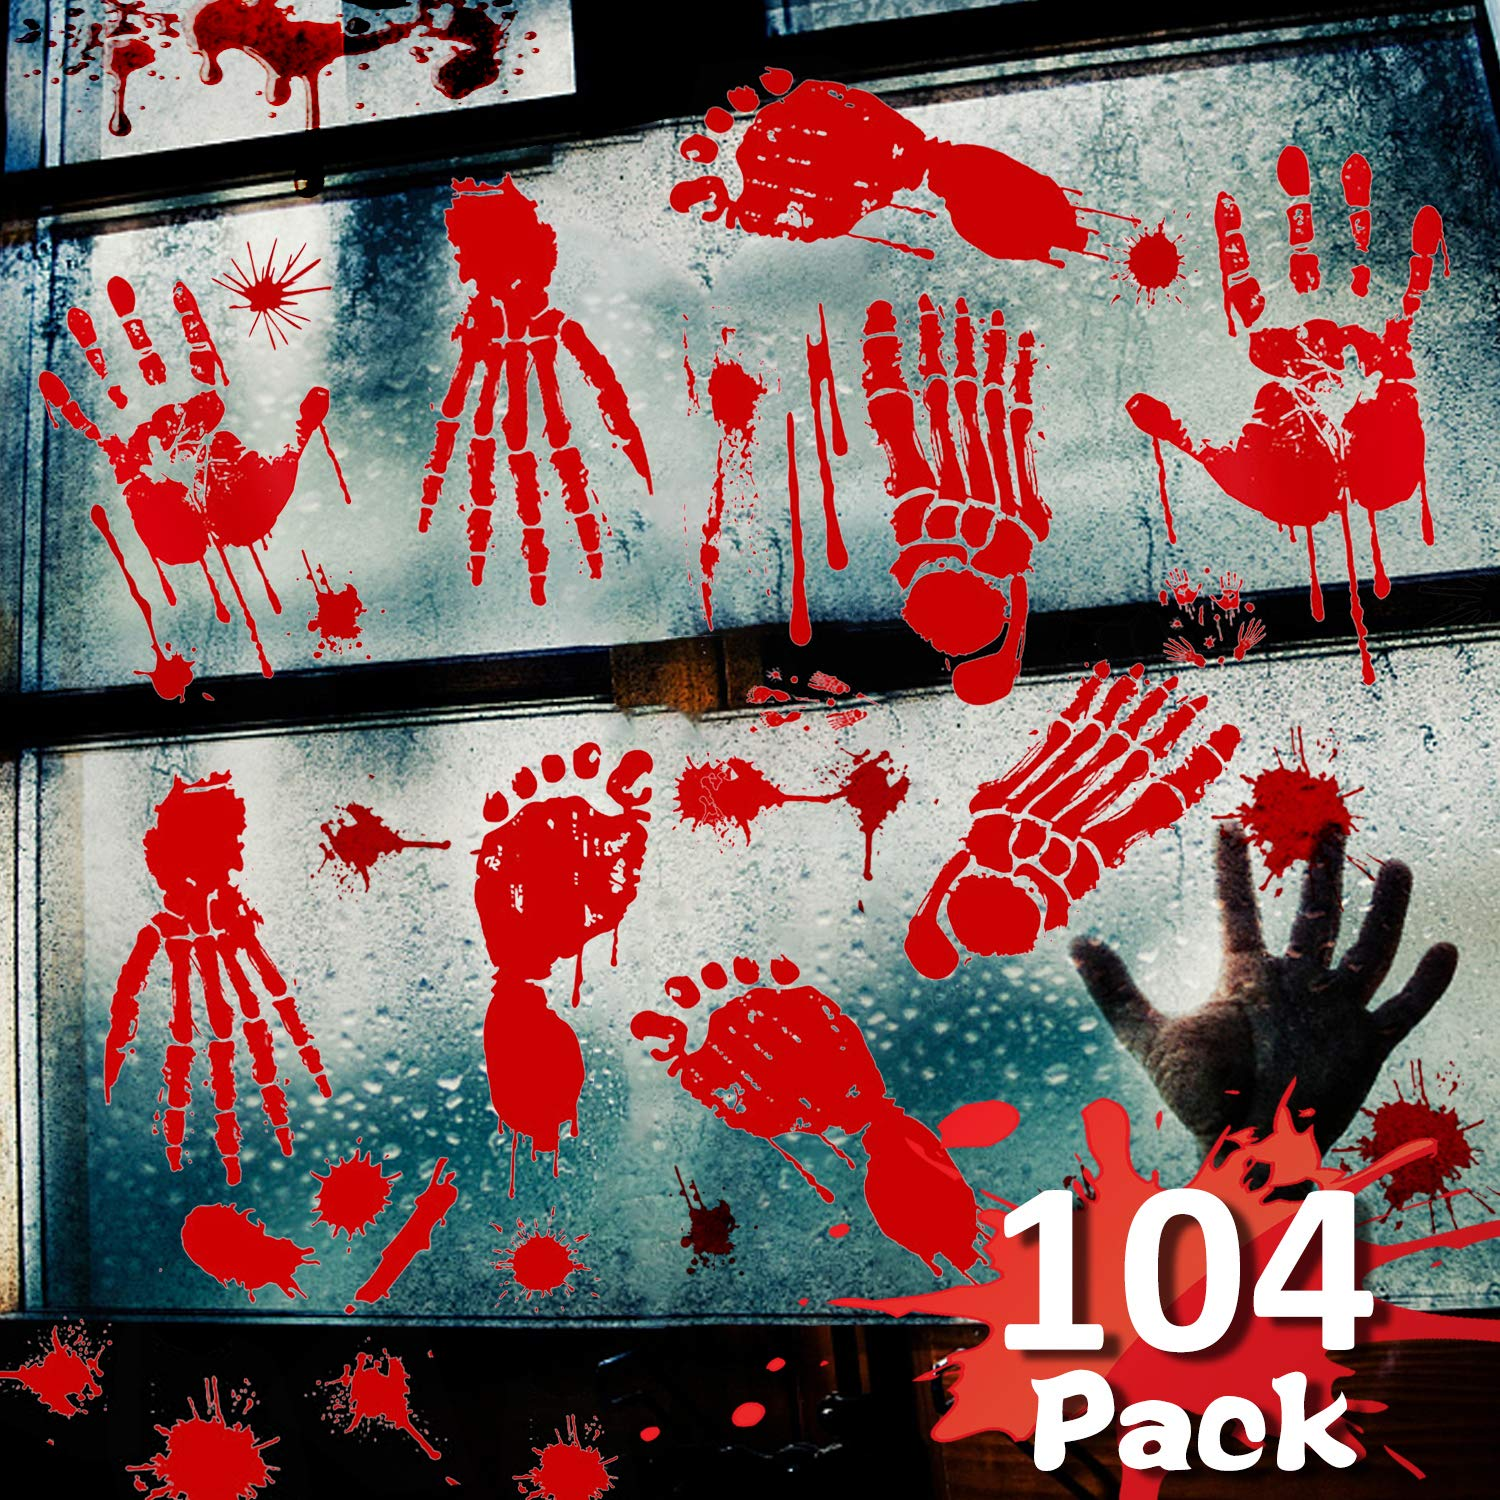 Winmayer 104 Pack Halloween Party Decoration Stickers,Bloody Handprint Footprints Stickers Clings Decals Bloodstain Indoor/Outdoor for Wall Door Window Floor Bathtub Haunted House Party Supplies Decor